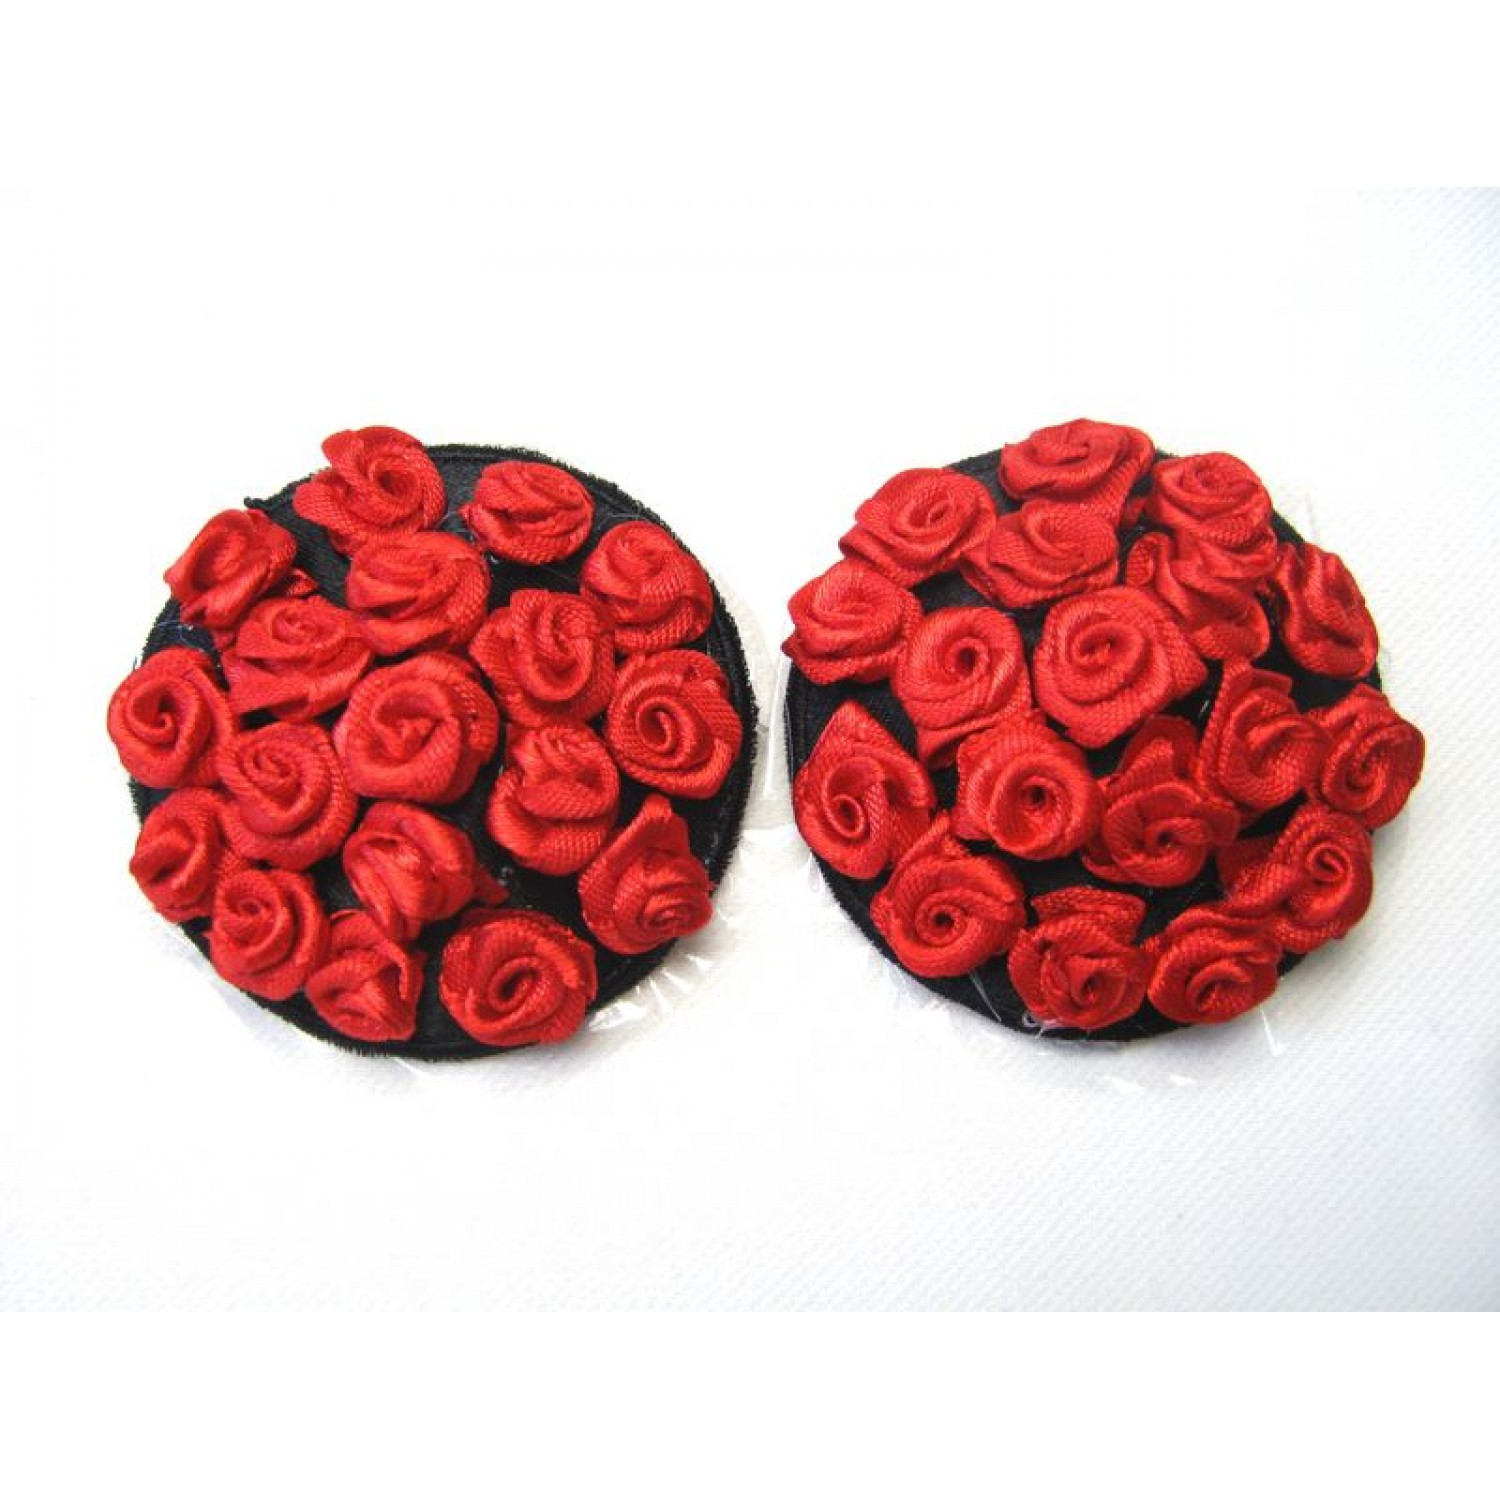 Gojilove red rose Pasties / Nipple covers (Several times uses)